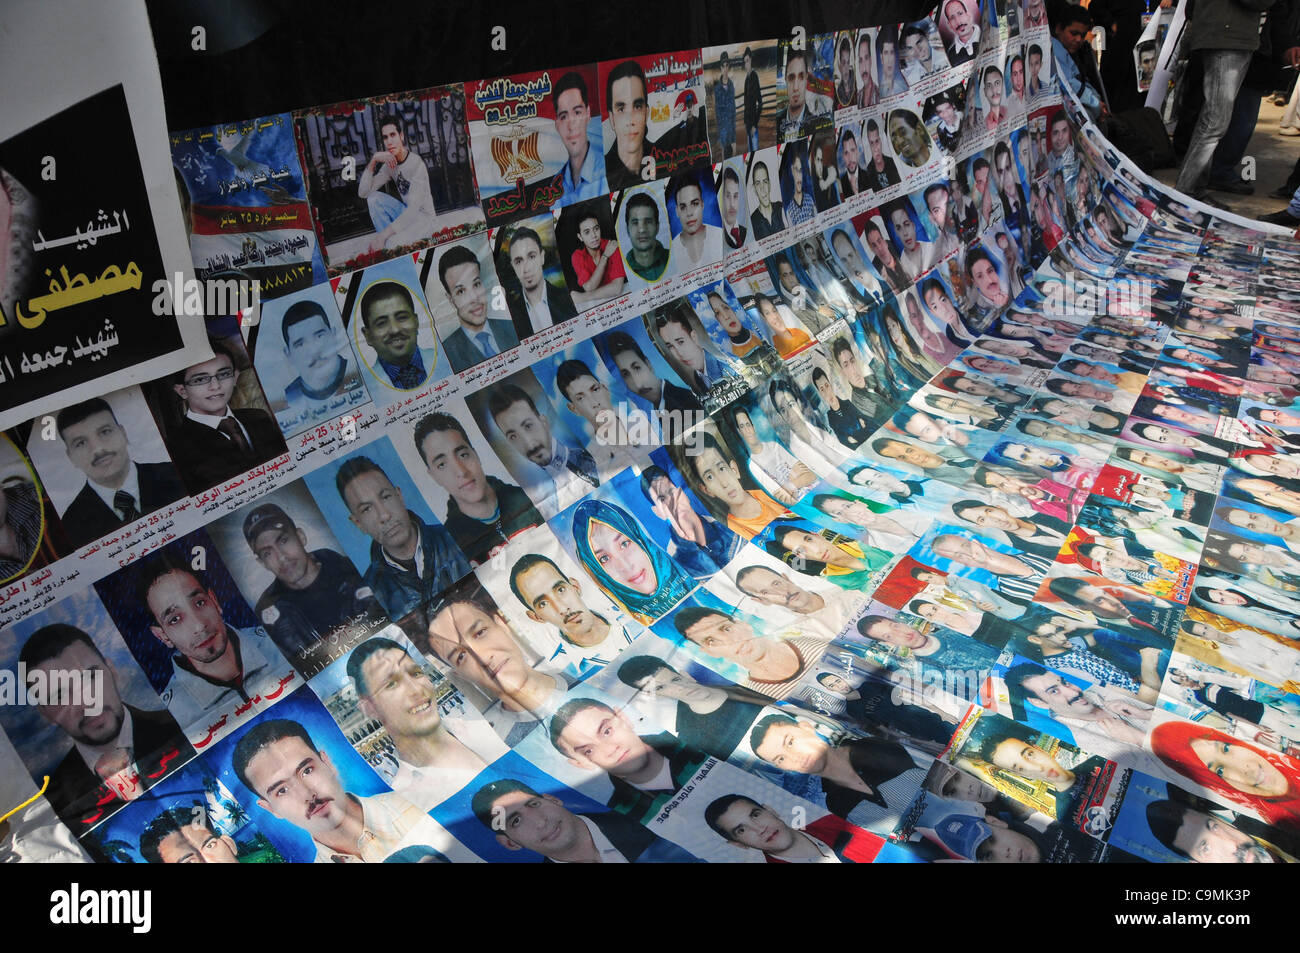 Egypt Uprising ,first anniversary Tahrir square Cairo 25th january 2012, Egypt's Uprising : images of people - Stock Image